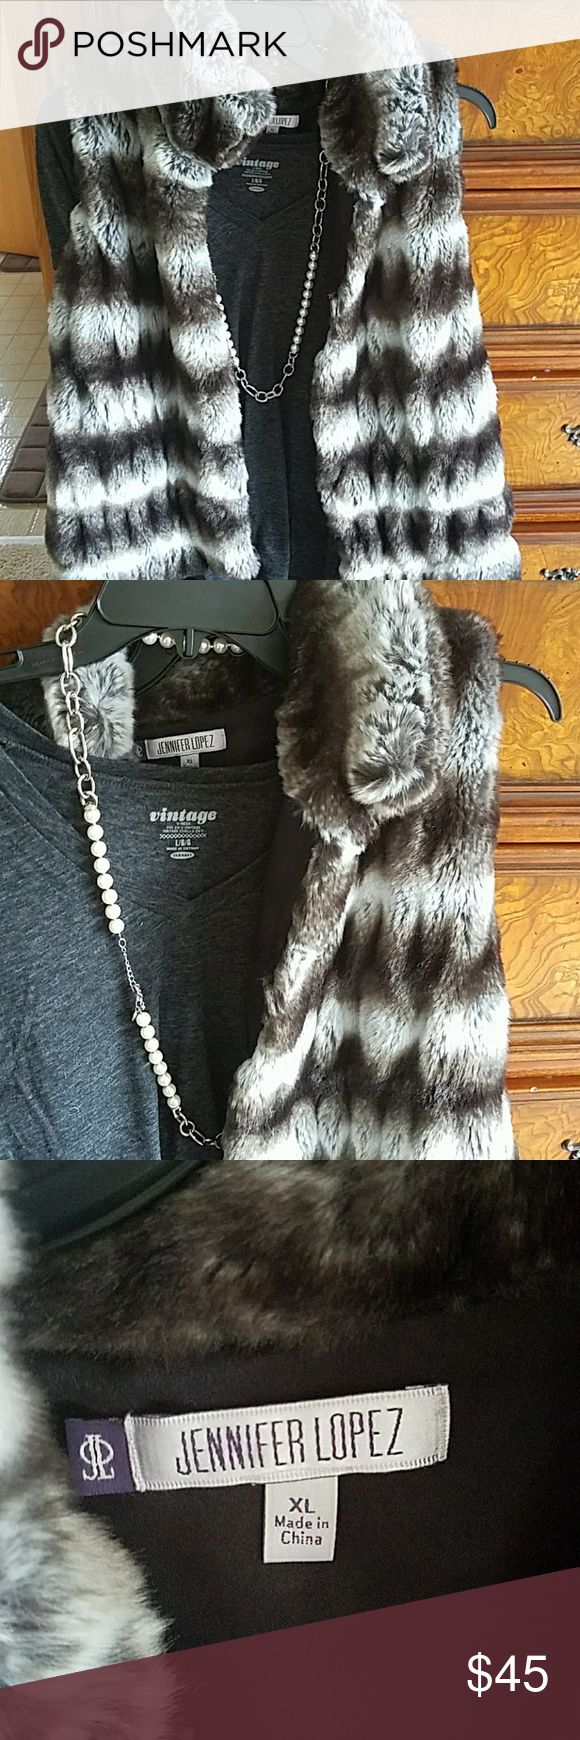 New with tags J Lo XL Faux Fur vest New with tags J Lo XL Faux Fur vest Jennifer Lopez Jackets & Coats Vests